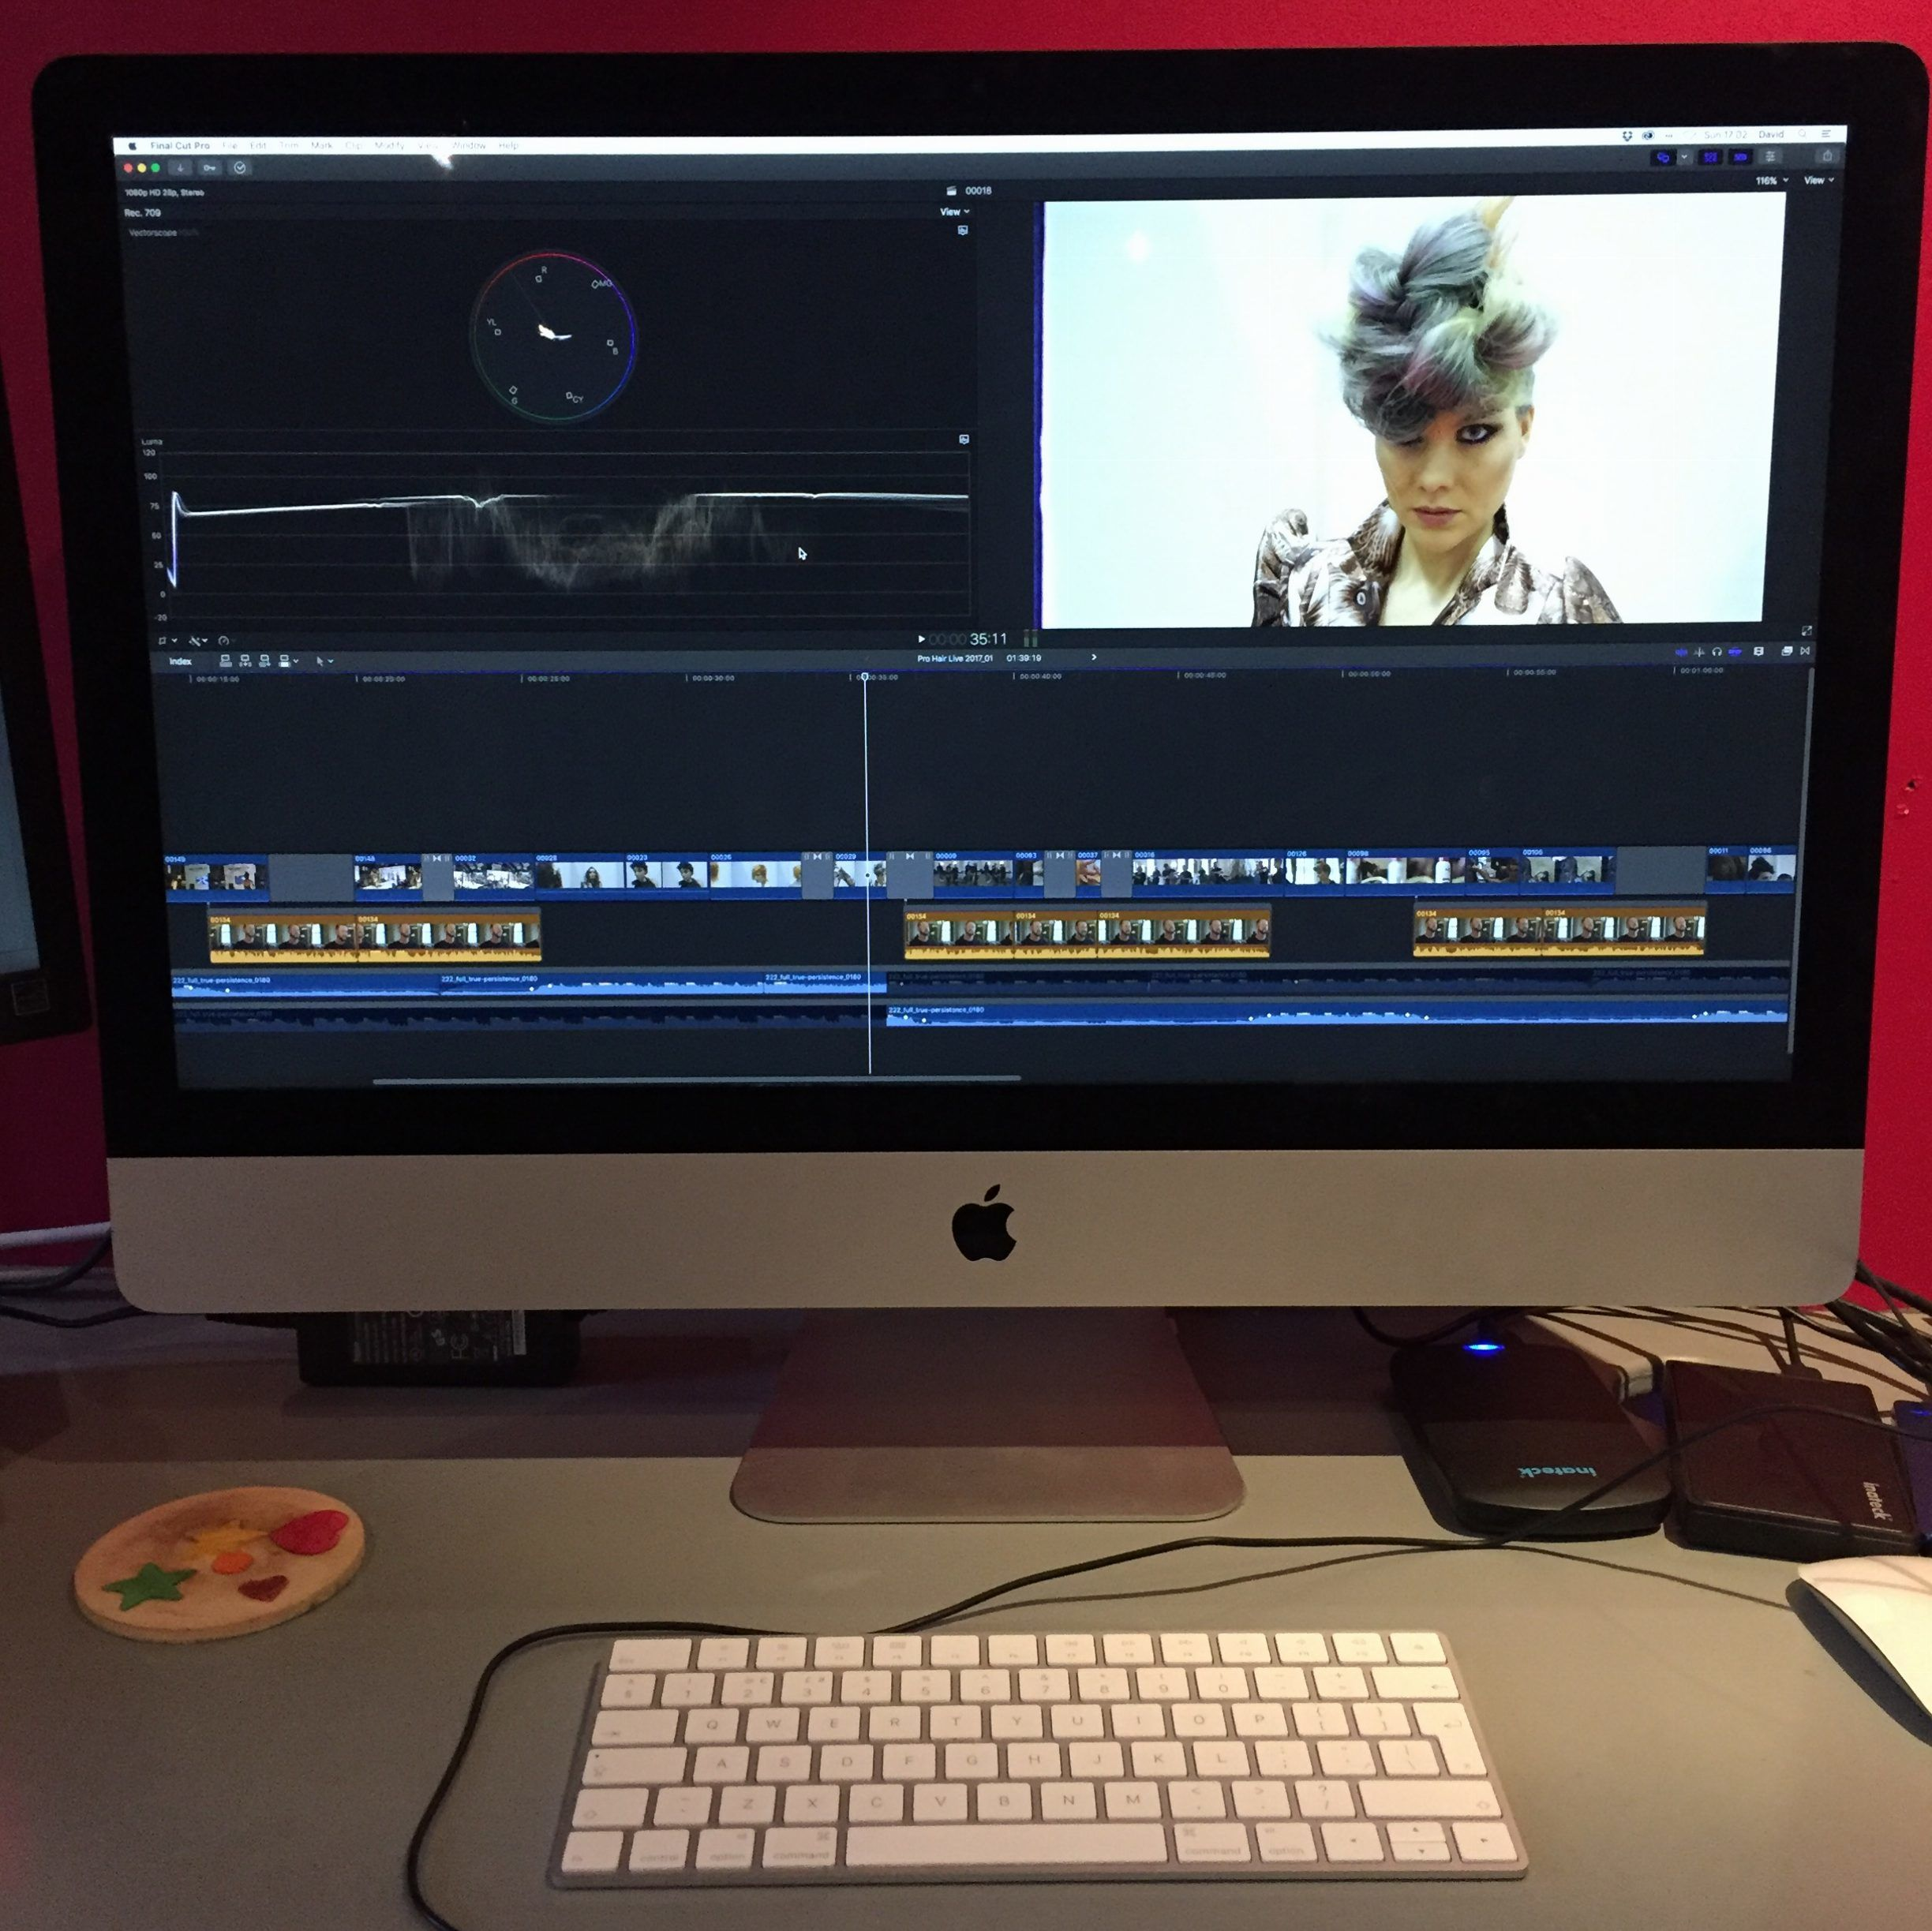 imac computer with Final Cut Pro X editing software. Event video company editing event footage.